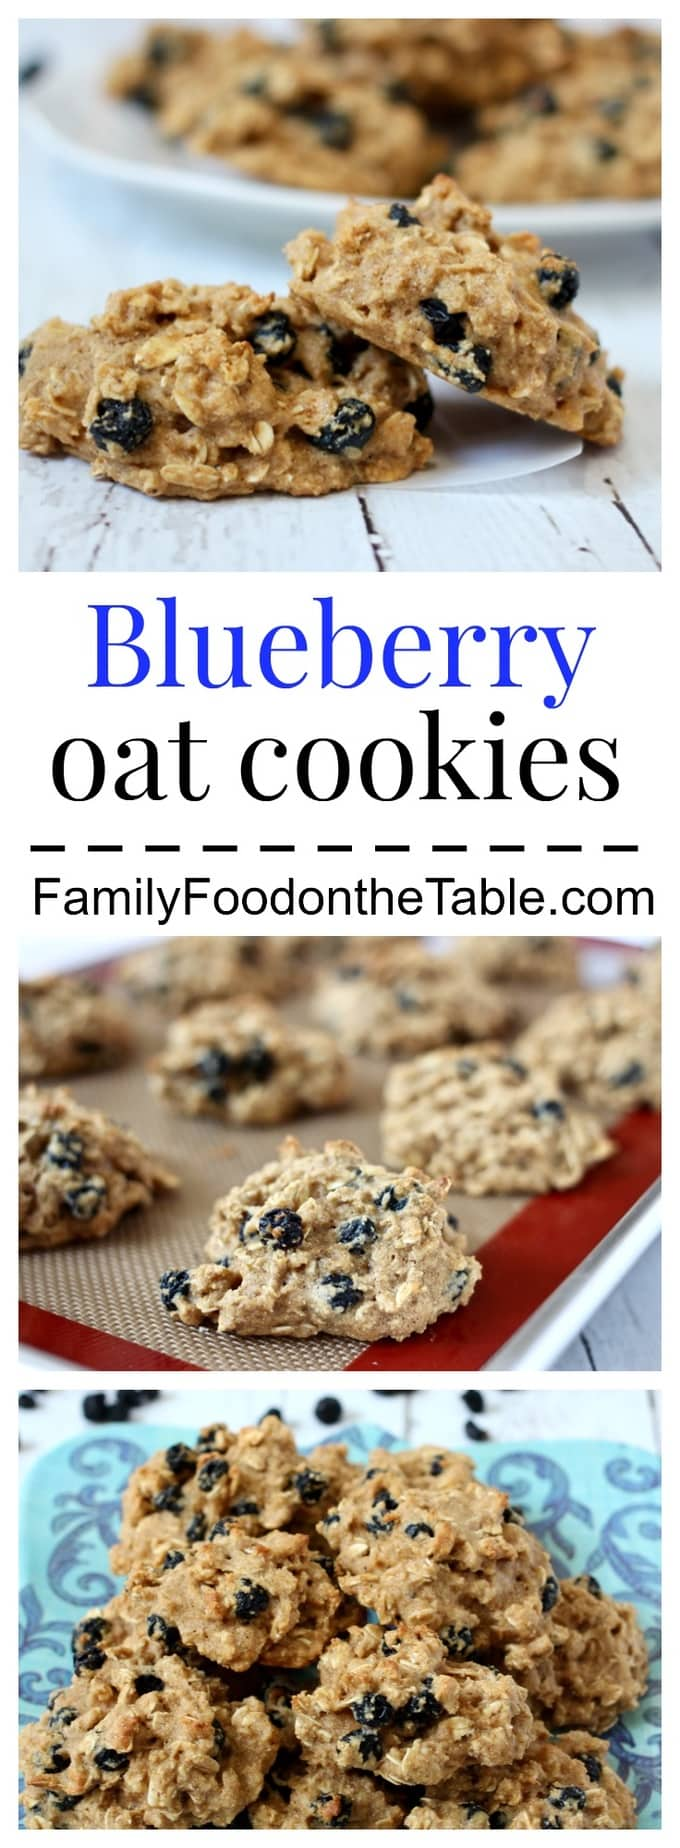 Whole grain, naturally sweetened blueberry oat cookies are the perfect snack!